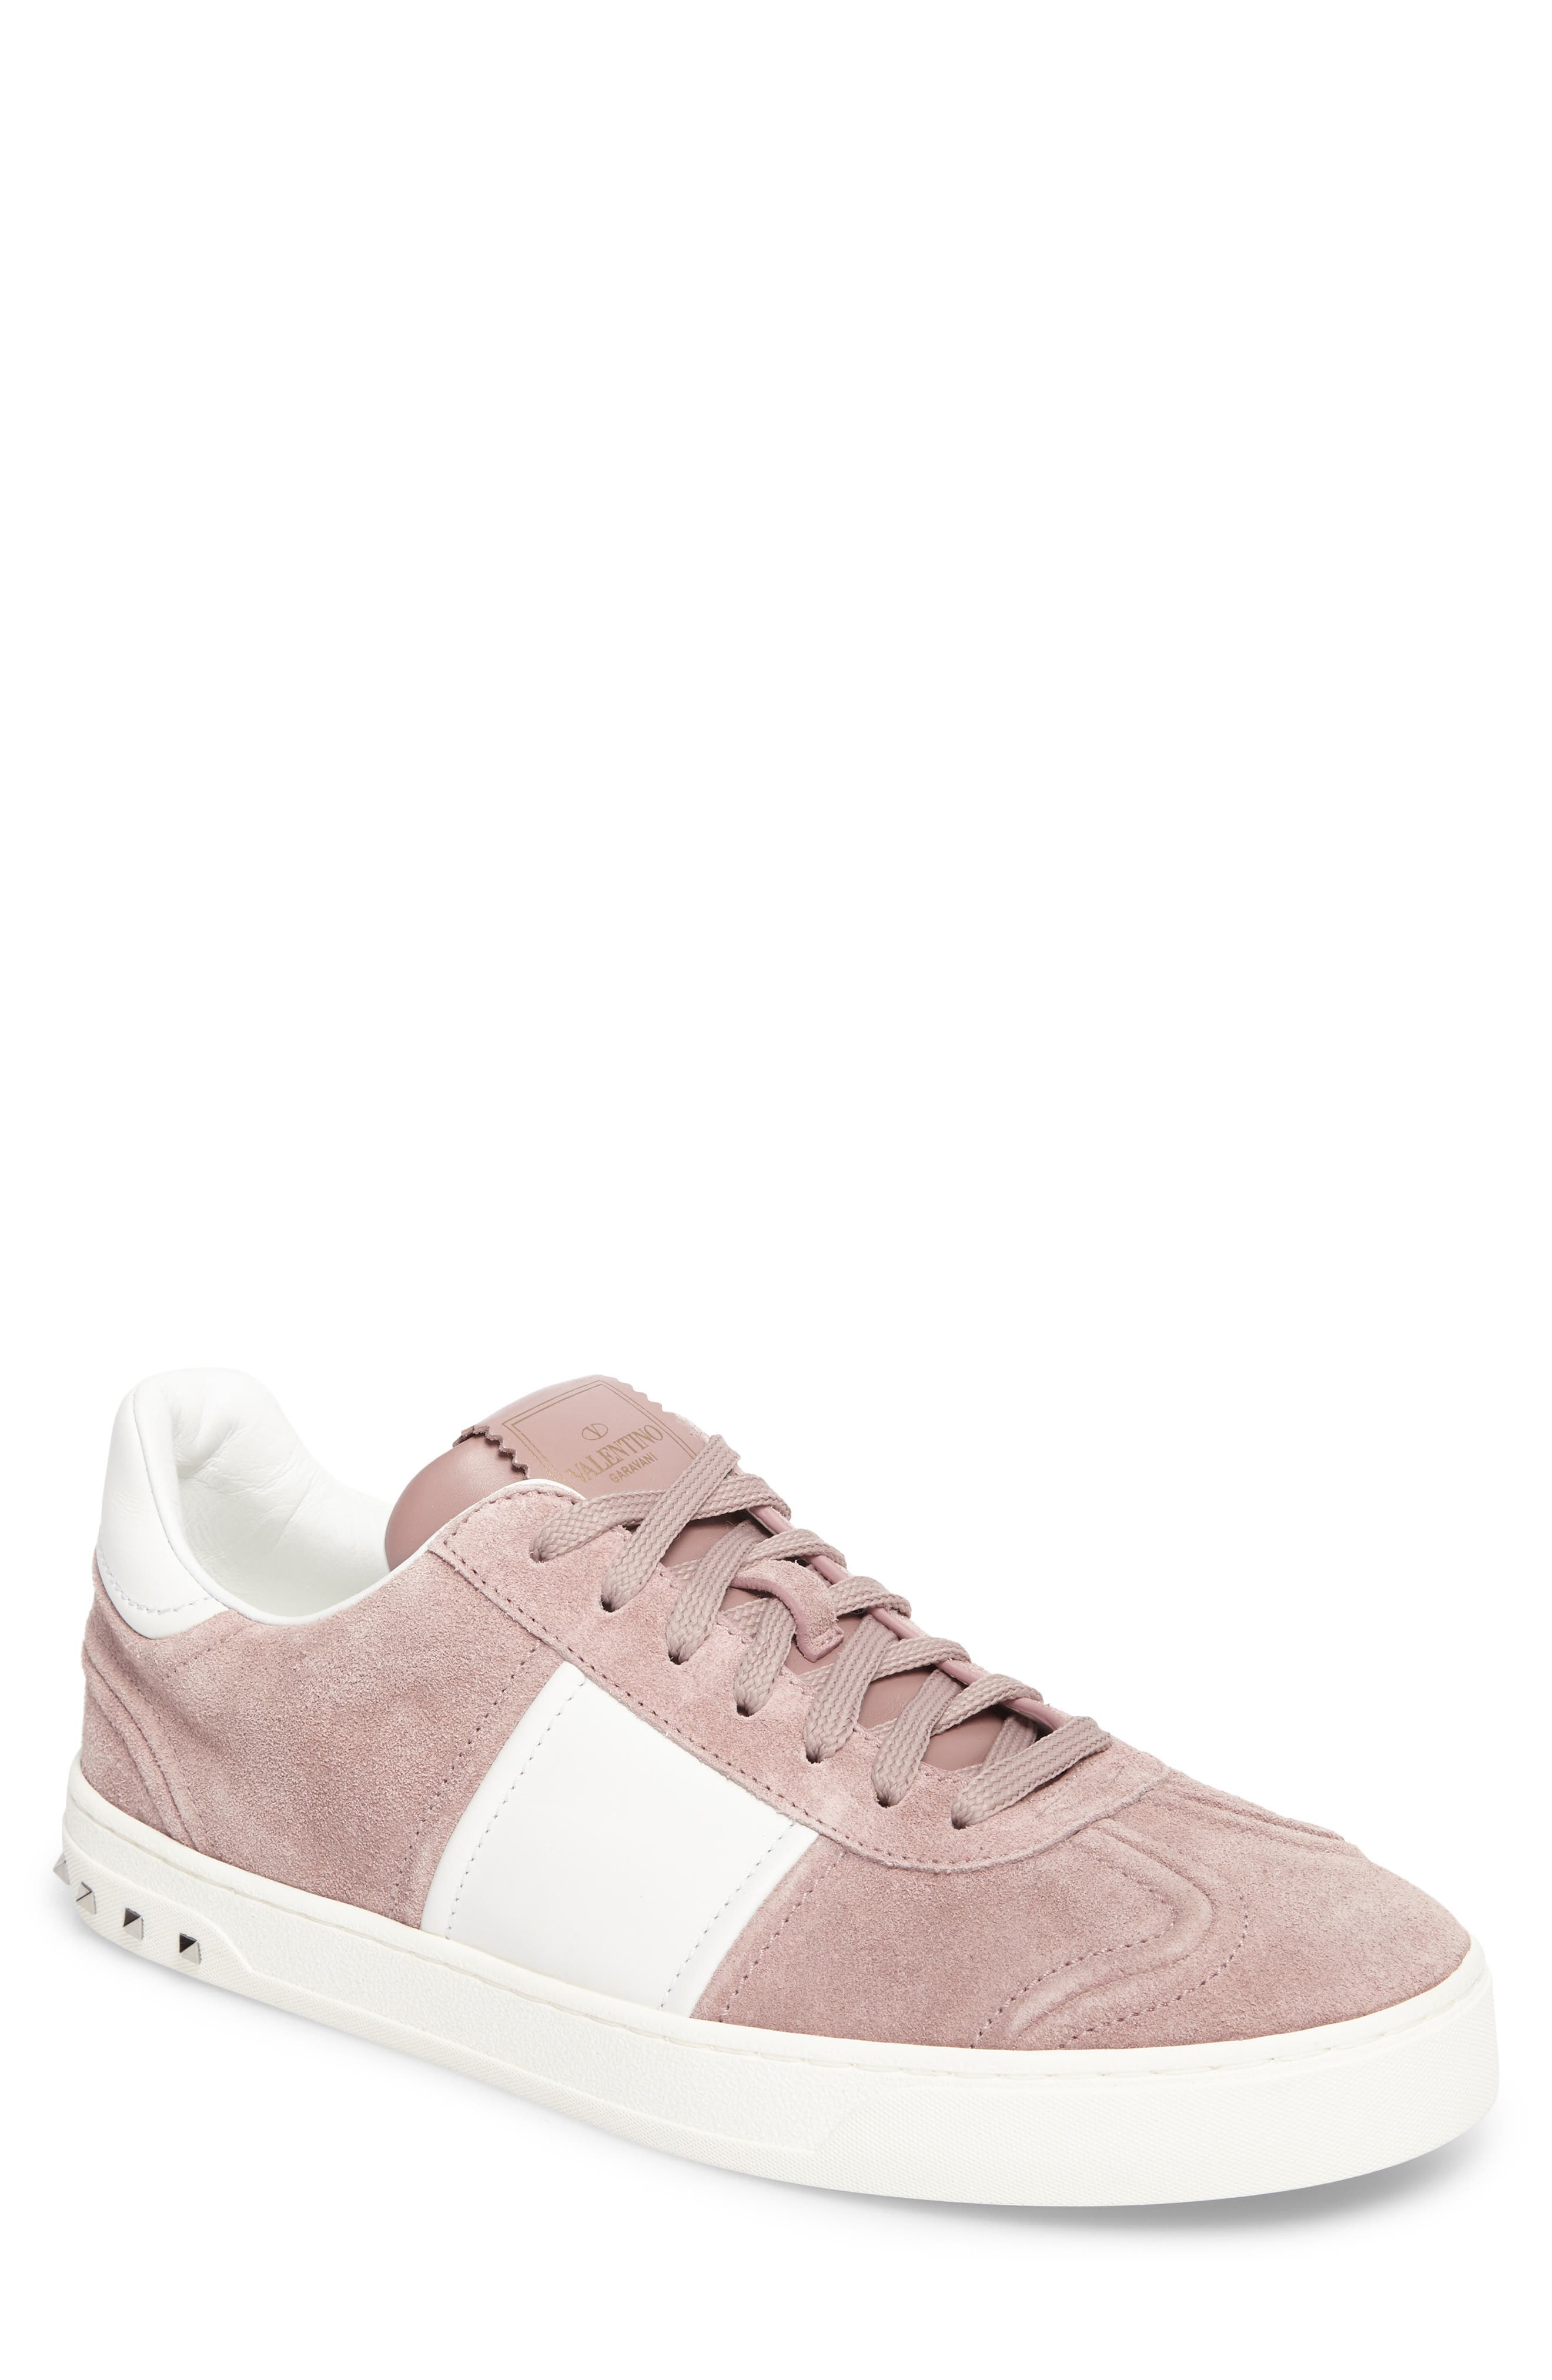 Fly Crew Sneaker,                             Main thumbnail 1, color,                             Lipstick/ Bianco